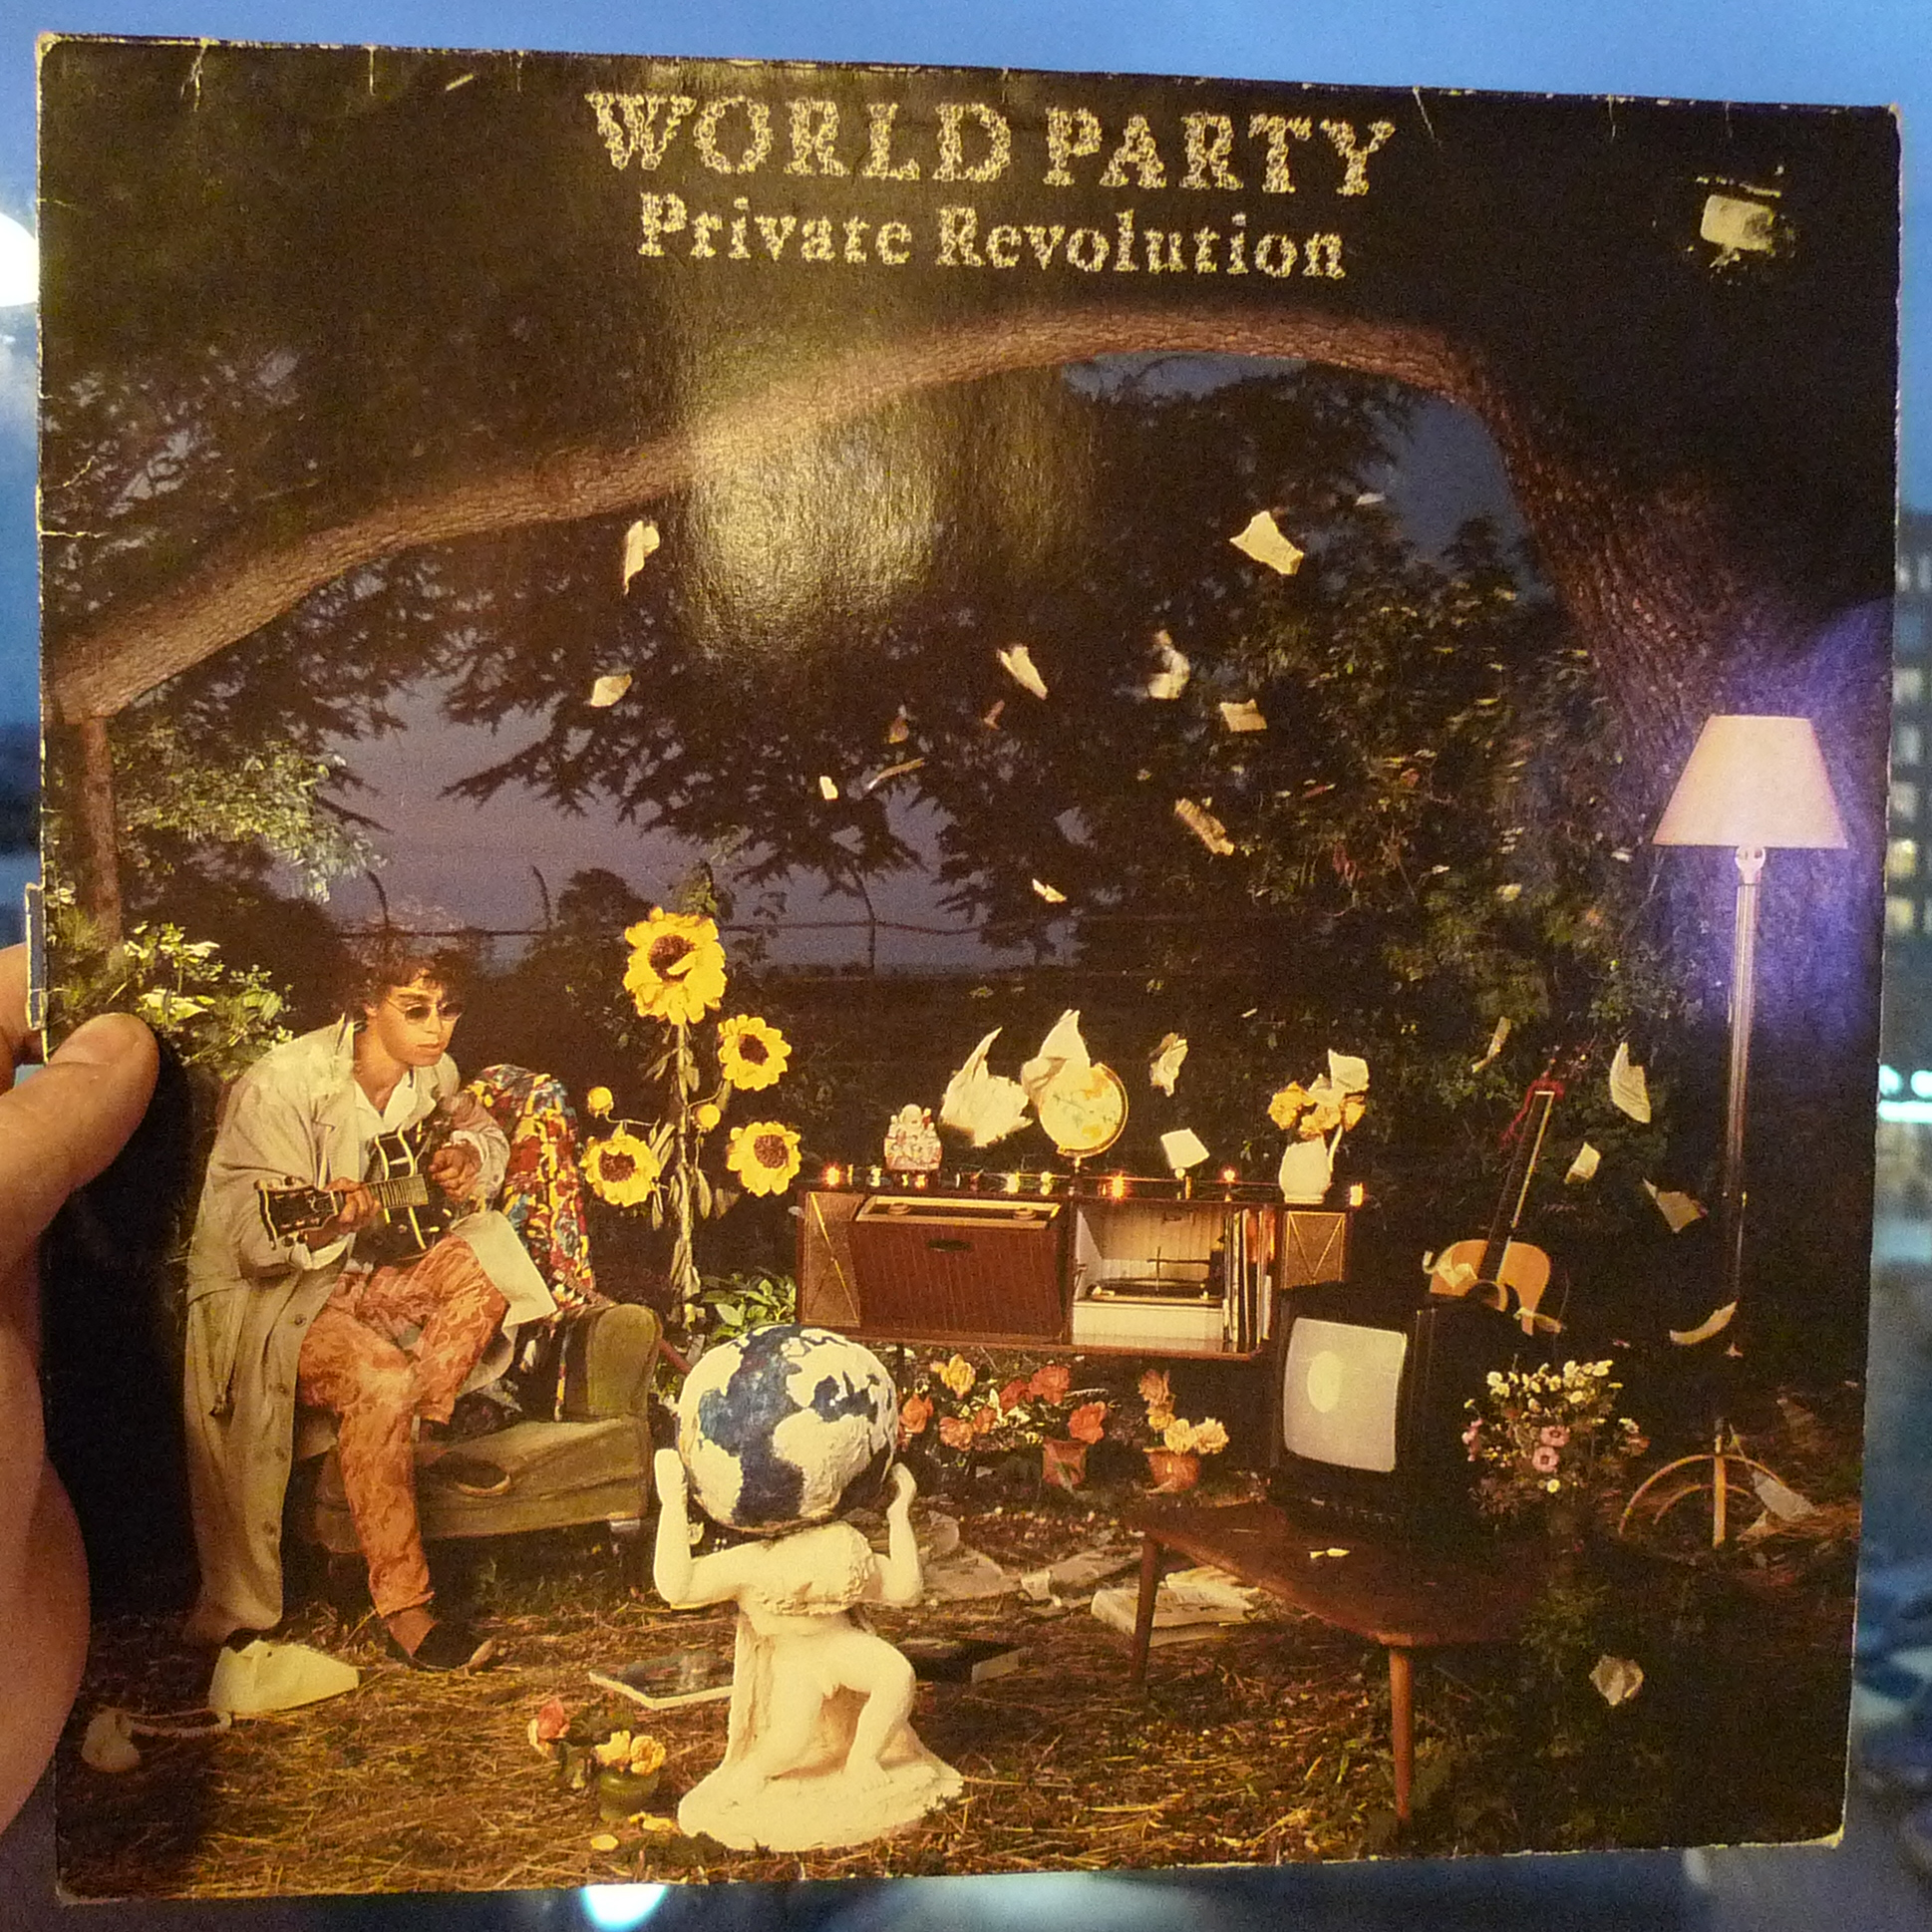 dj50 ep070 sleeve worldparty